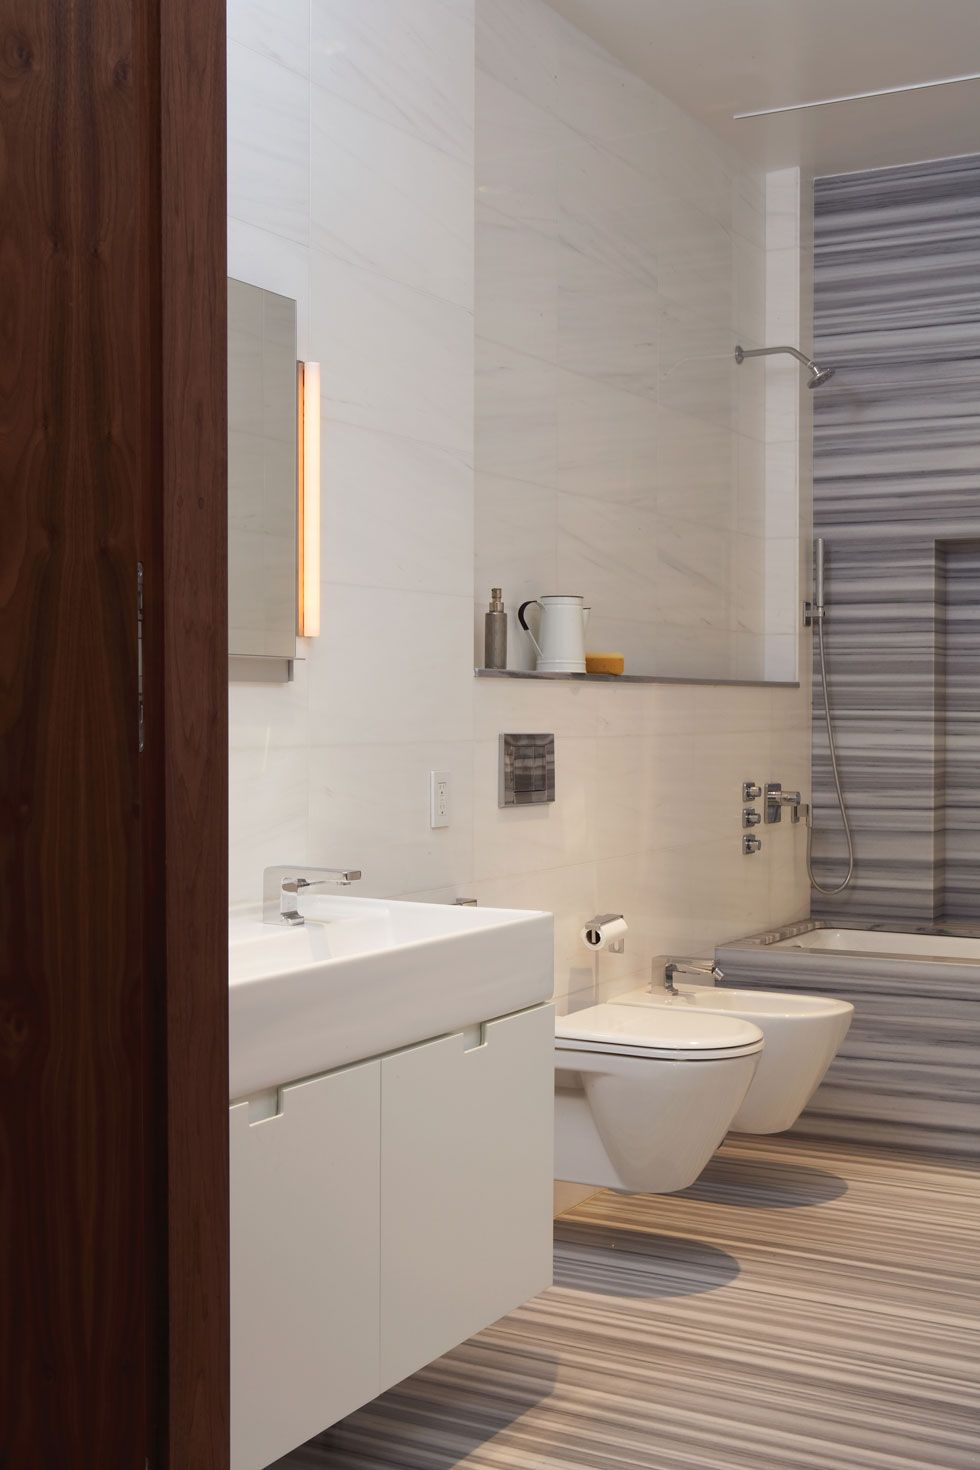 Bianco dolomite wall tile around tub; good with blue | Bathrooms ...